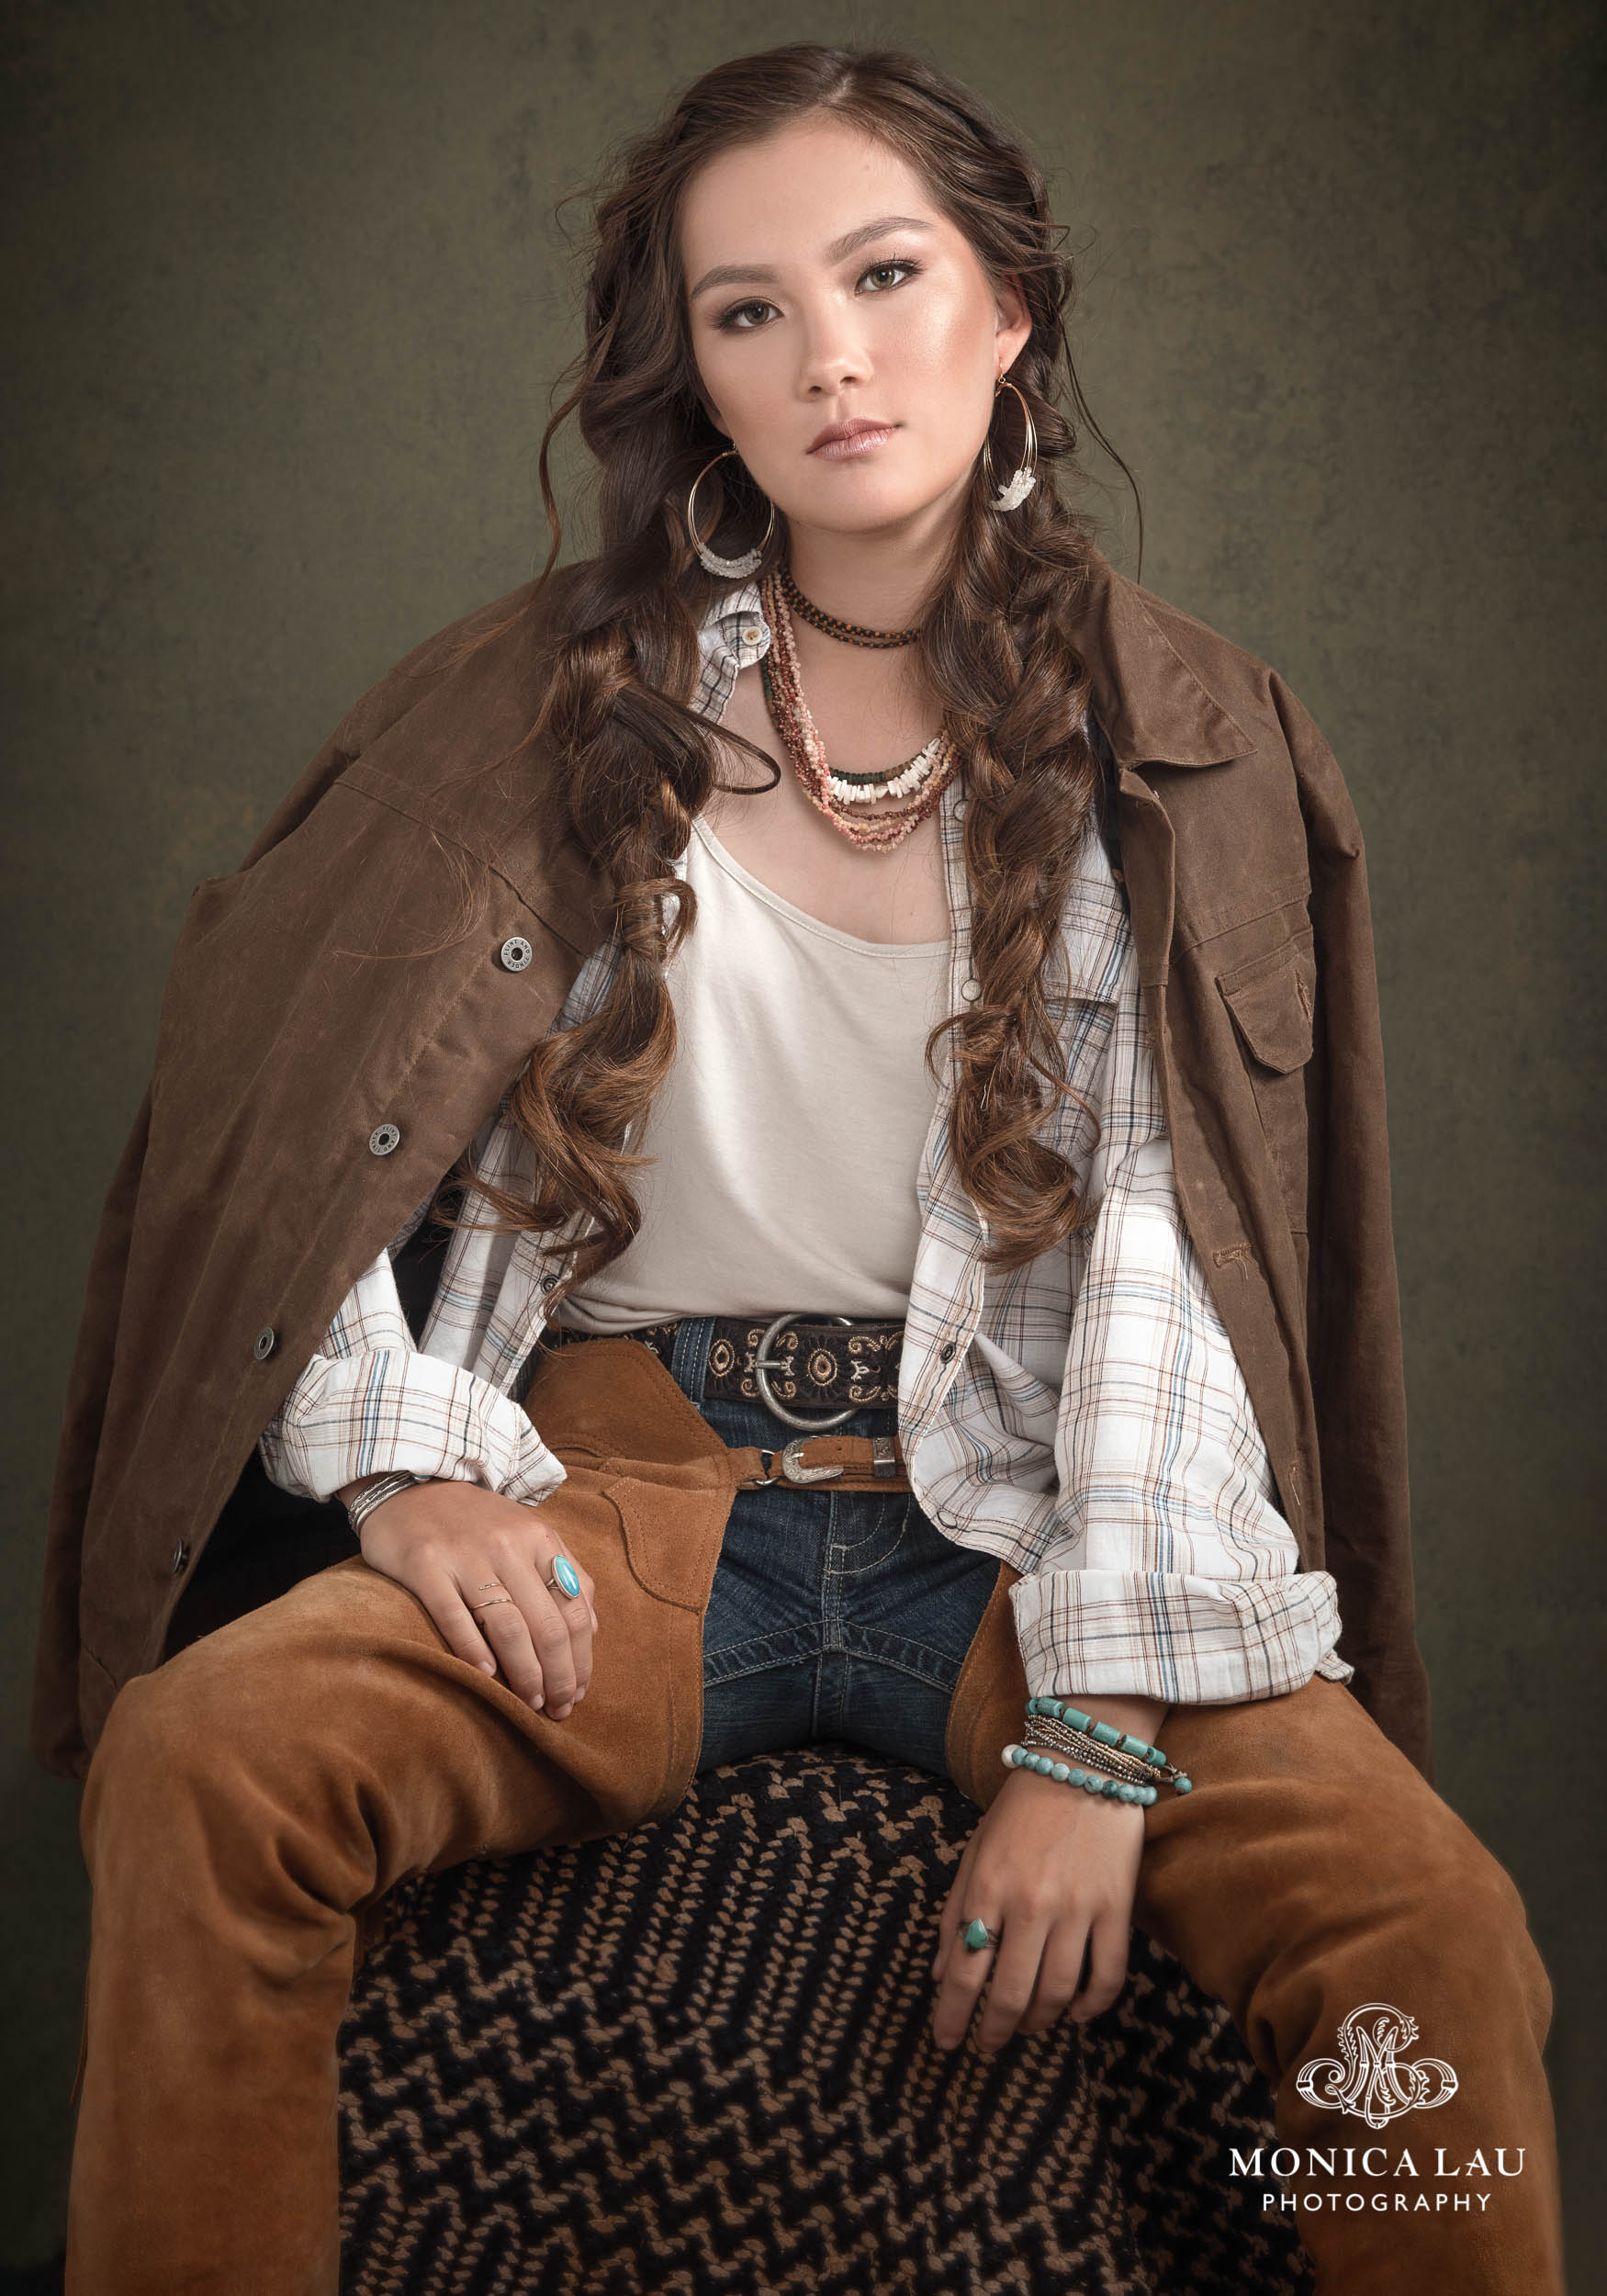 19MonicaLauPhotography-ShelbyWallenCowgirlPortraits0594-2.jpg